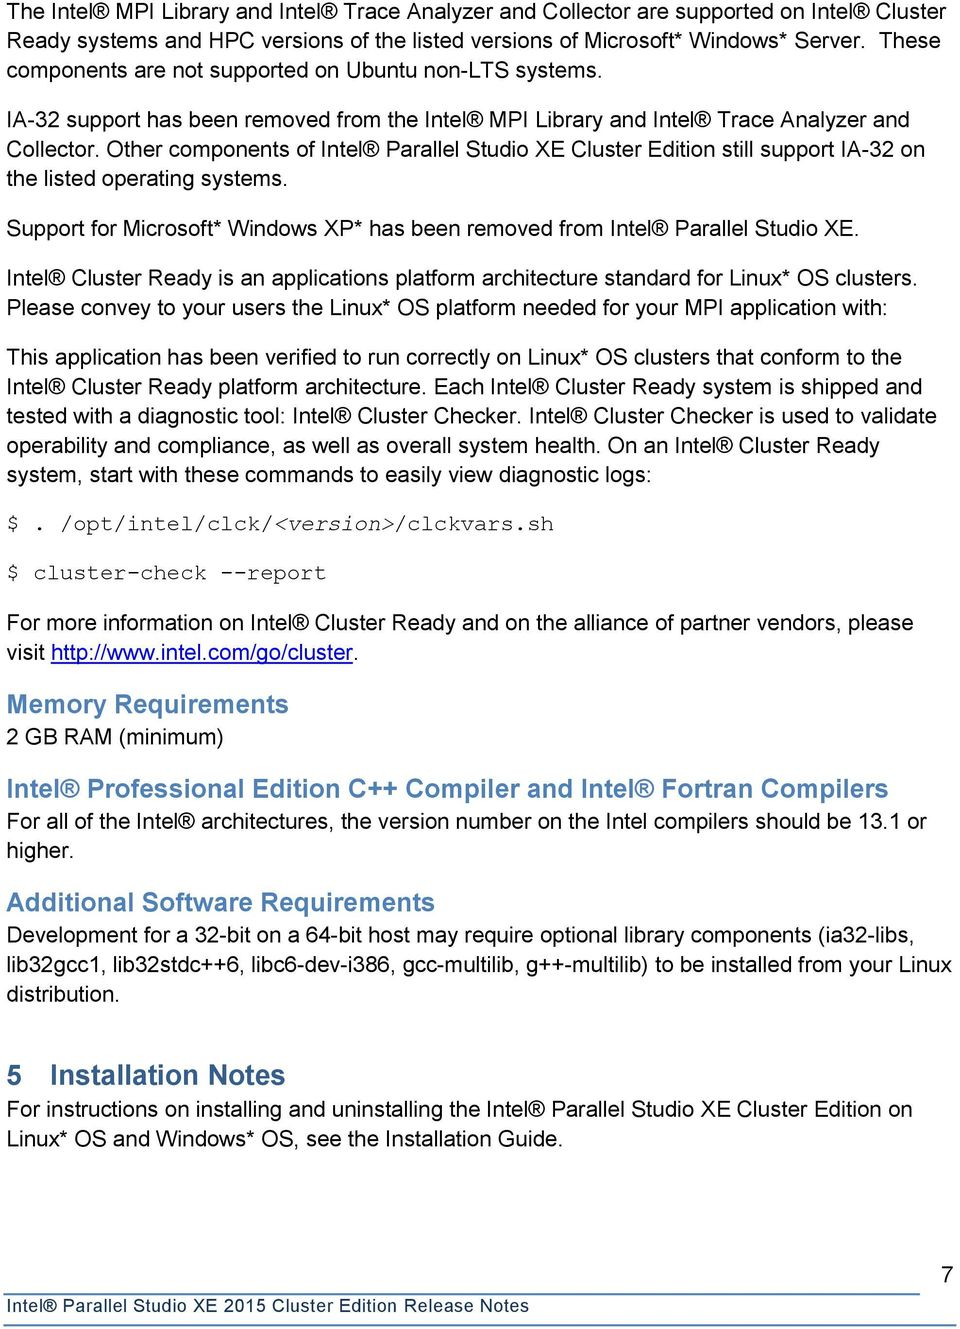 Other components of Intel Parallel Studio XE Cluster Edition still support IA-32 on the listed operating systems. Support for Microsoft* Windows XP* has been removed from Intel Parallel Studio XE.